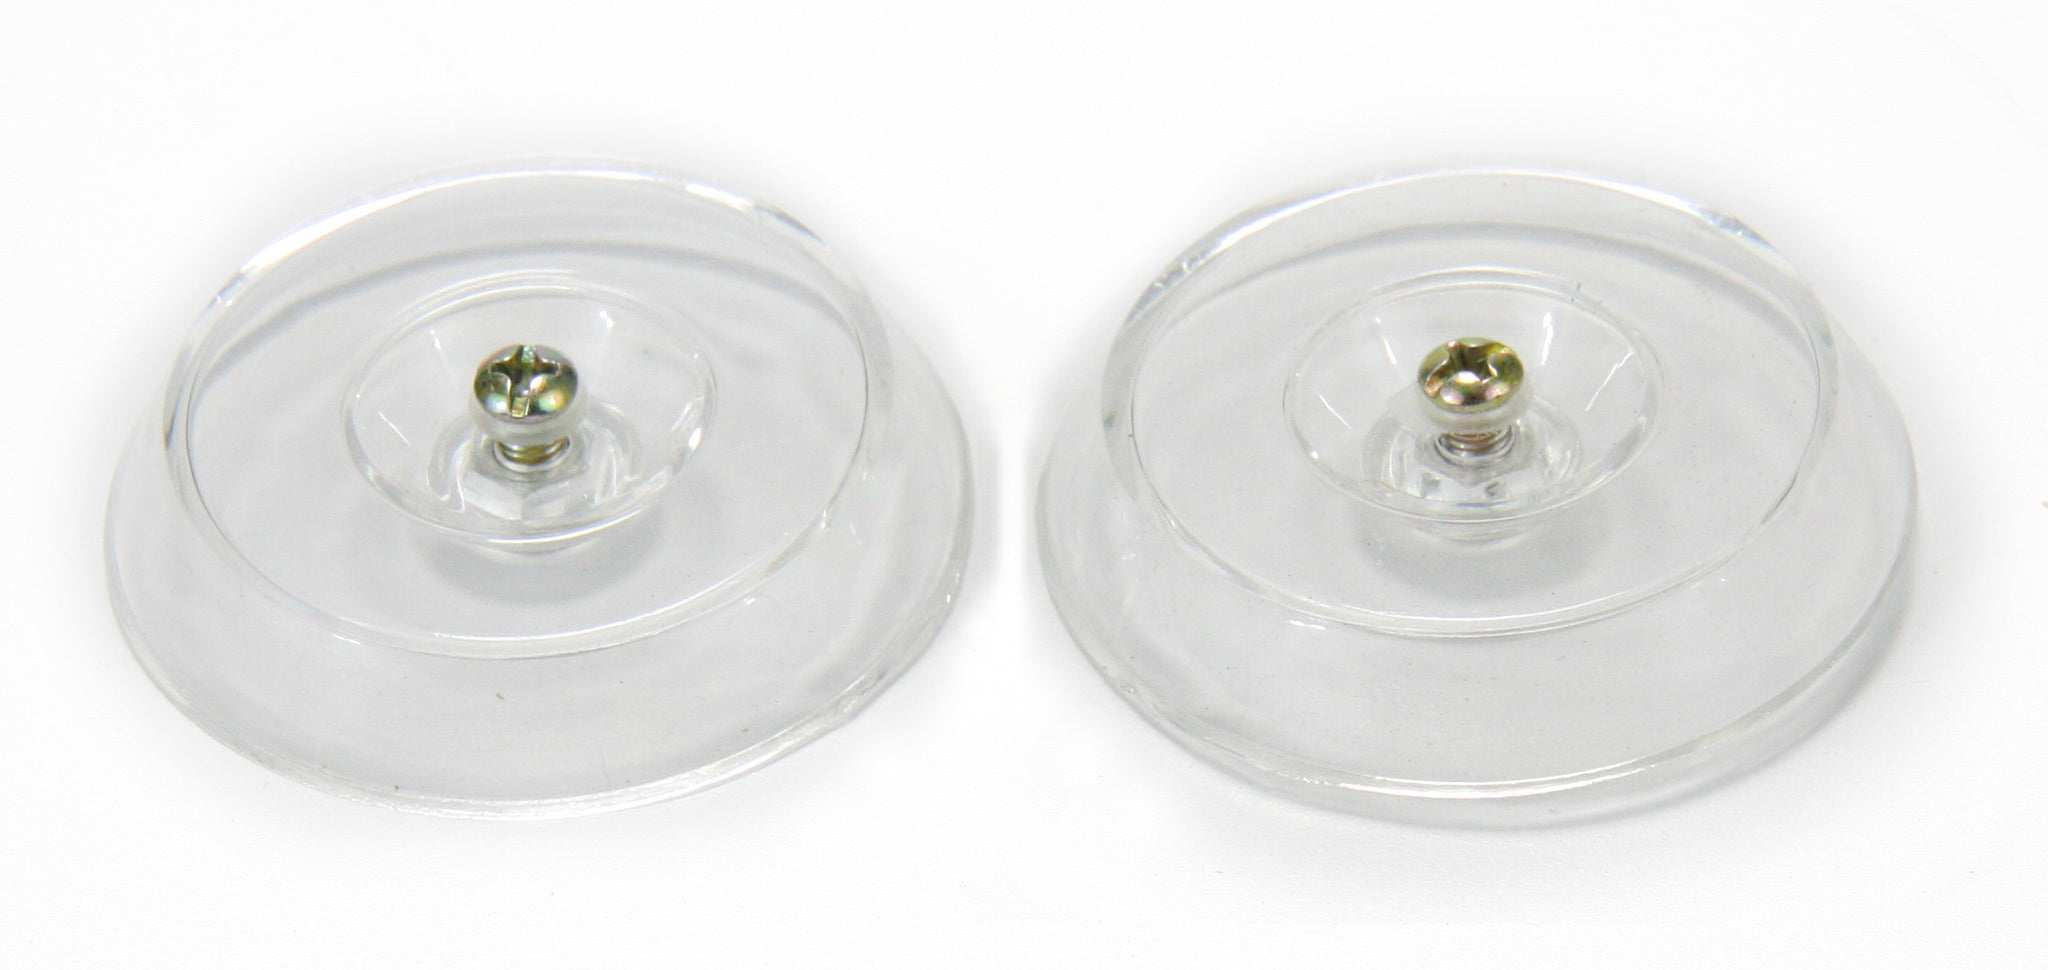 Oil Collecting Dish for K202 Ducted Kitchen Range Hood, 1 Pair